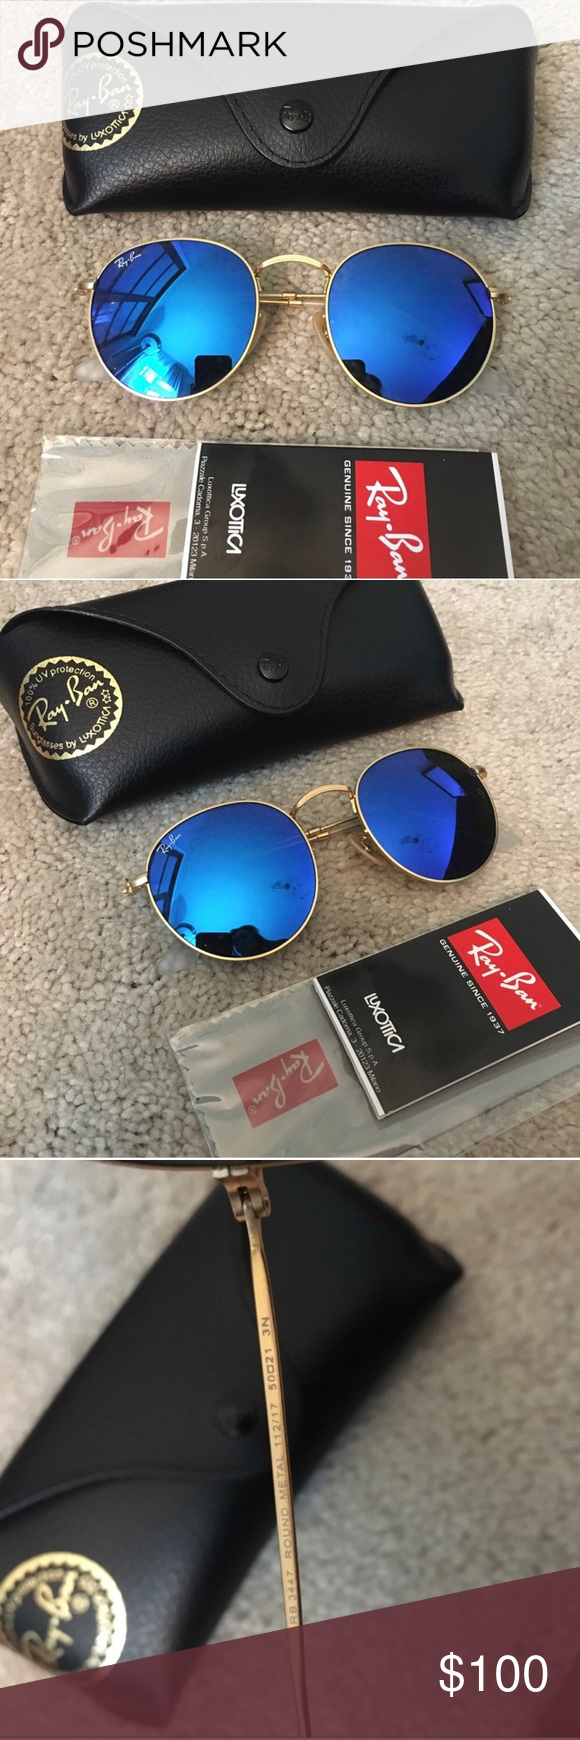 9fadbd68b 🧡NEW Ray-Ban Round Metal Blue Icons Sunglasses Brand new authentic 50-21mm